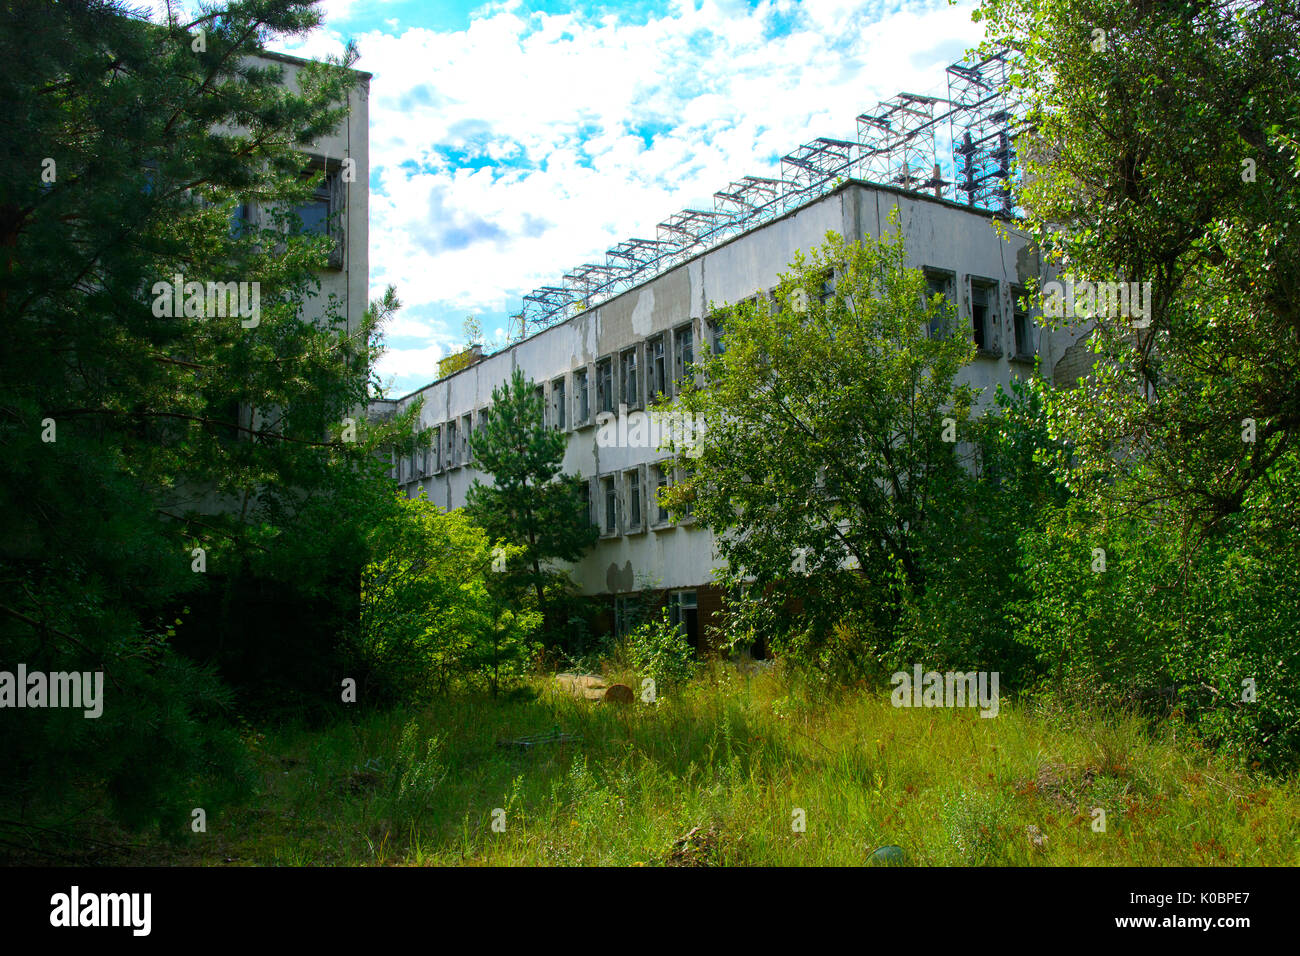 Destroyed buildings in the exclusion zone. Dead military unit. Consequences of the Chernobyl nuclear disaster, August 2017. - Stock Image